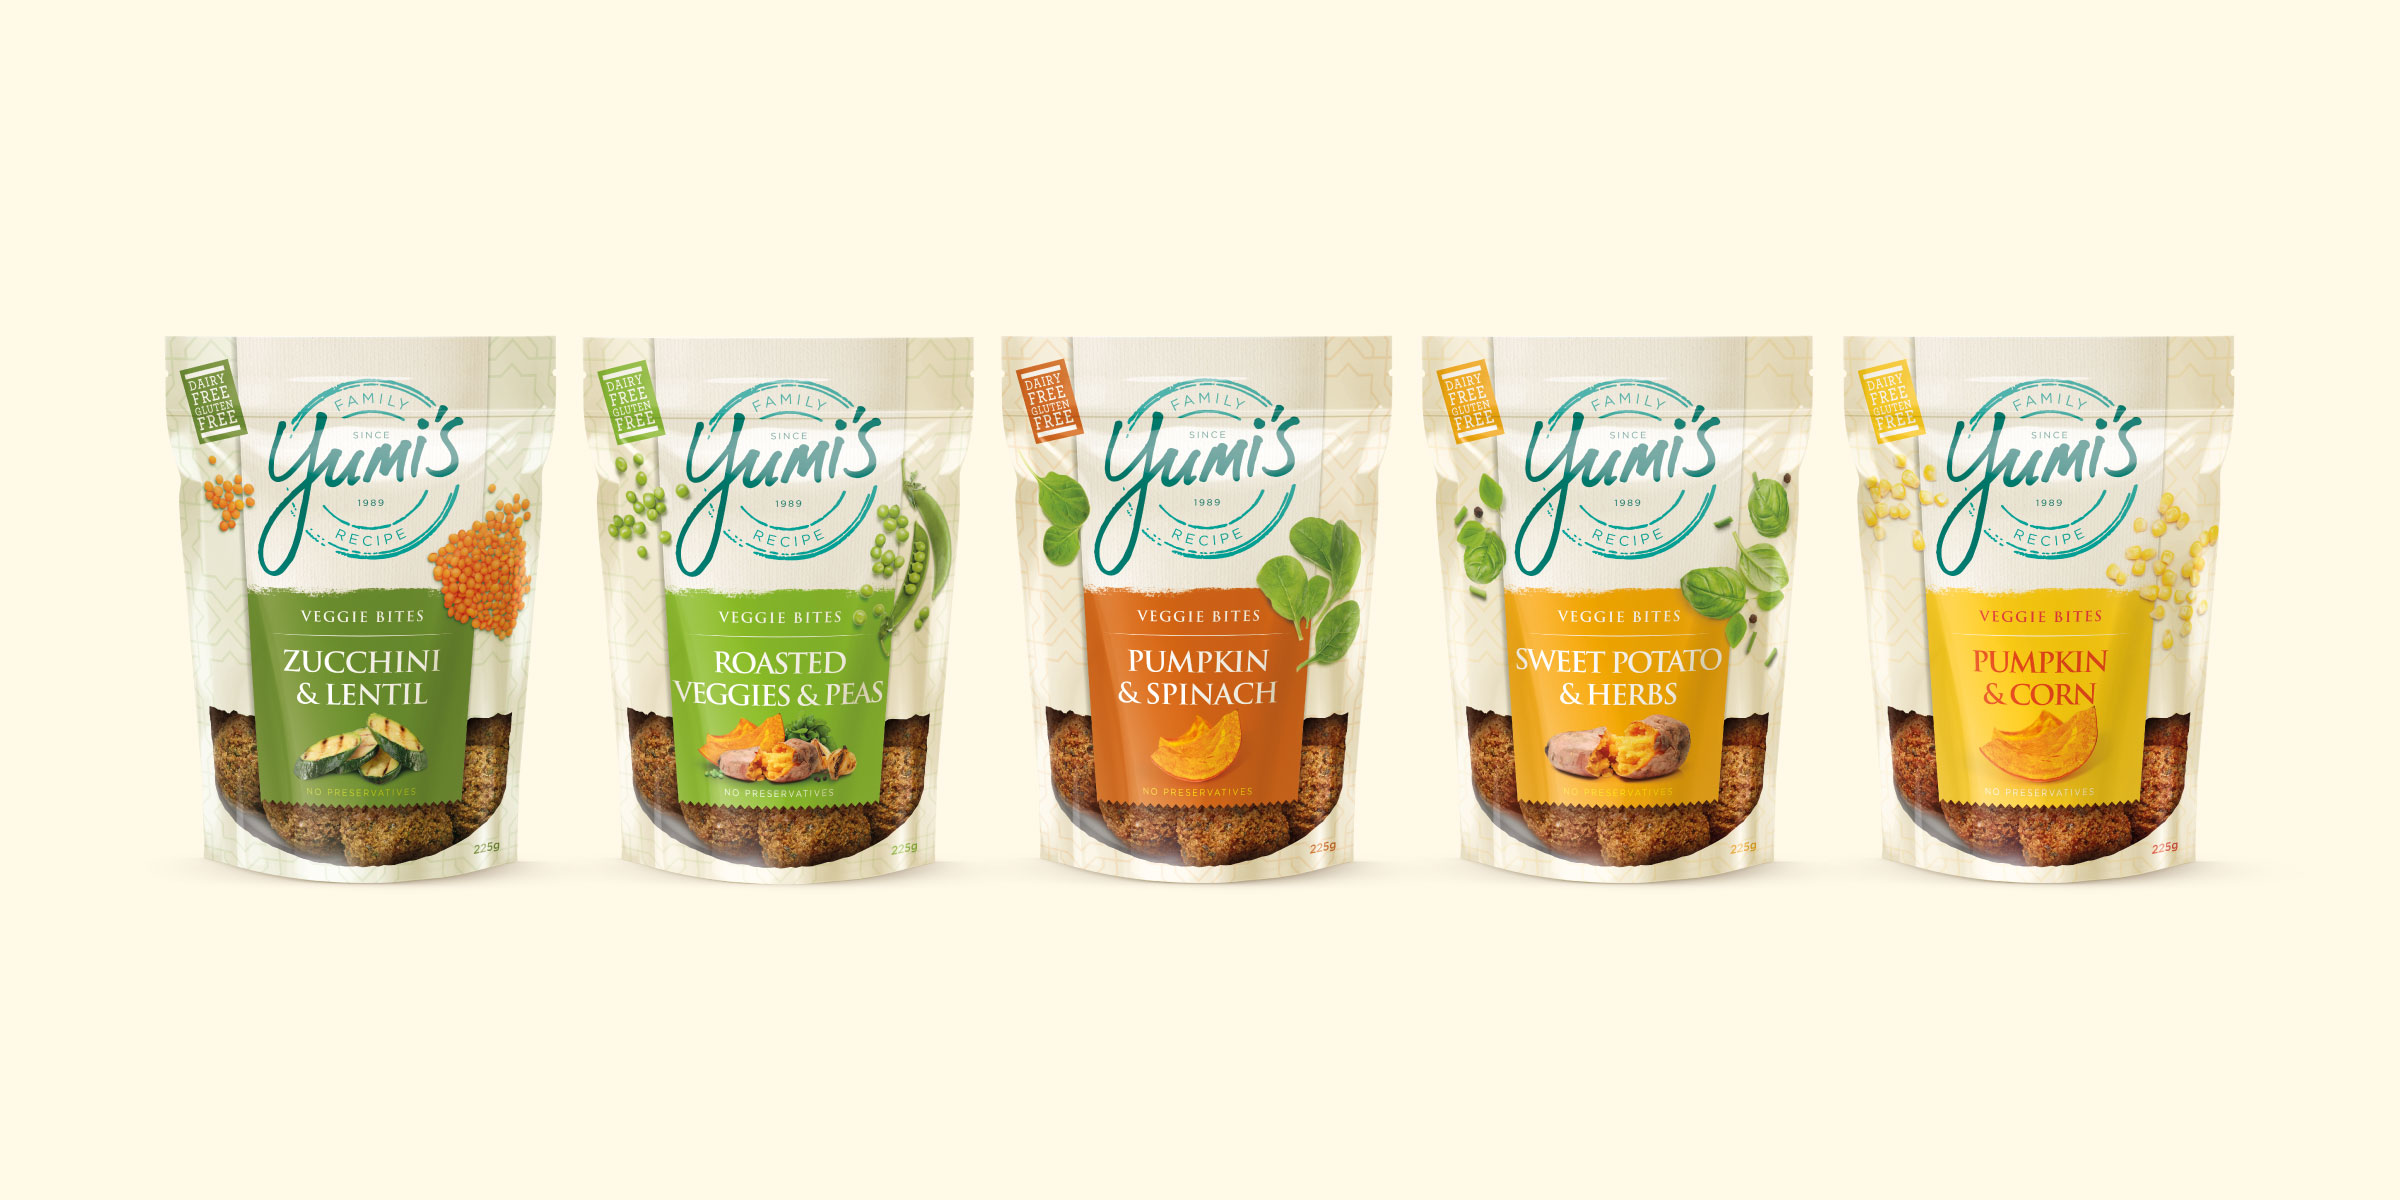 Yumi's Veggie Bites Range Packaging Design